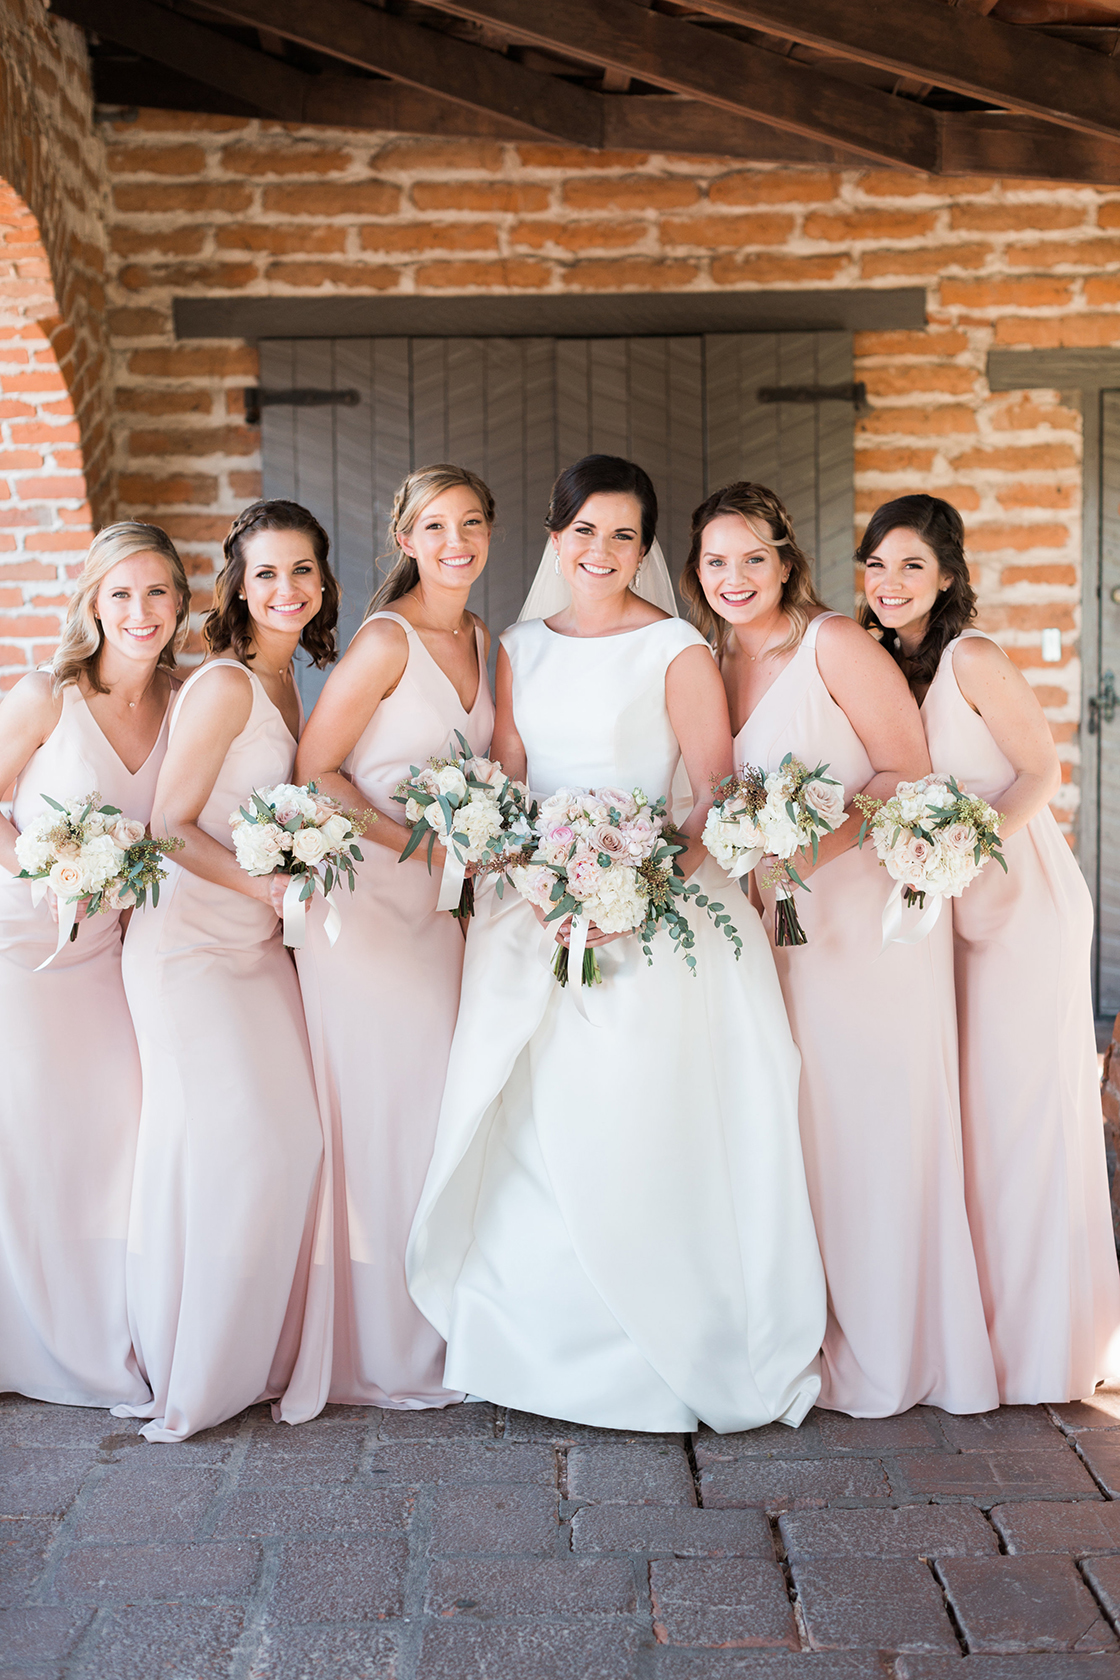 6b8cfaabef Rackel-mendations How To Choose Your Wedding Style   Color Palette ...